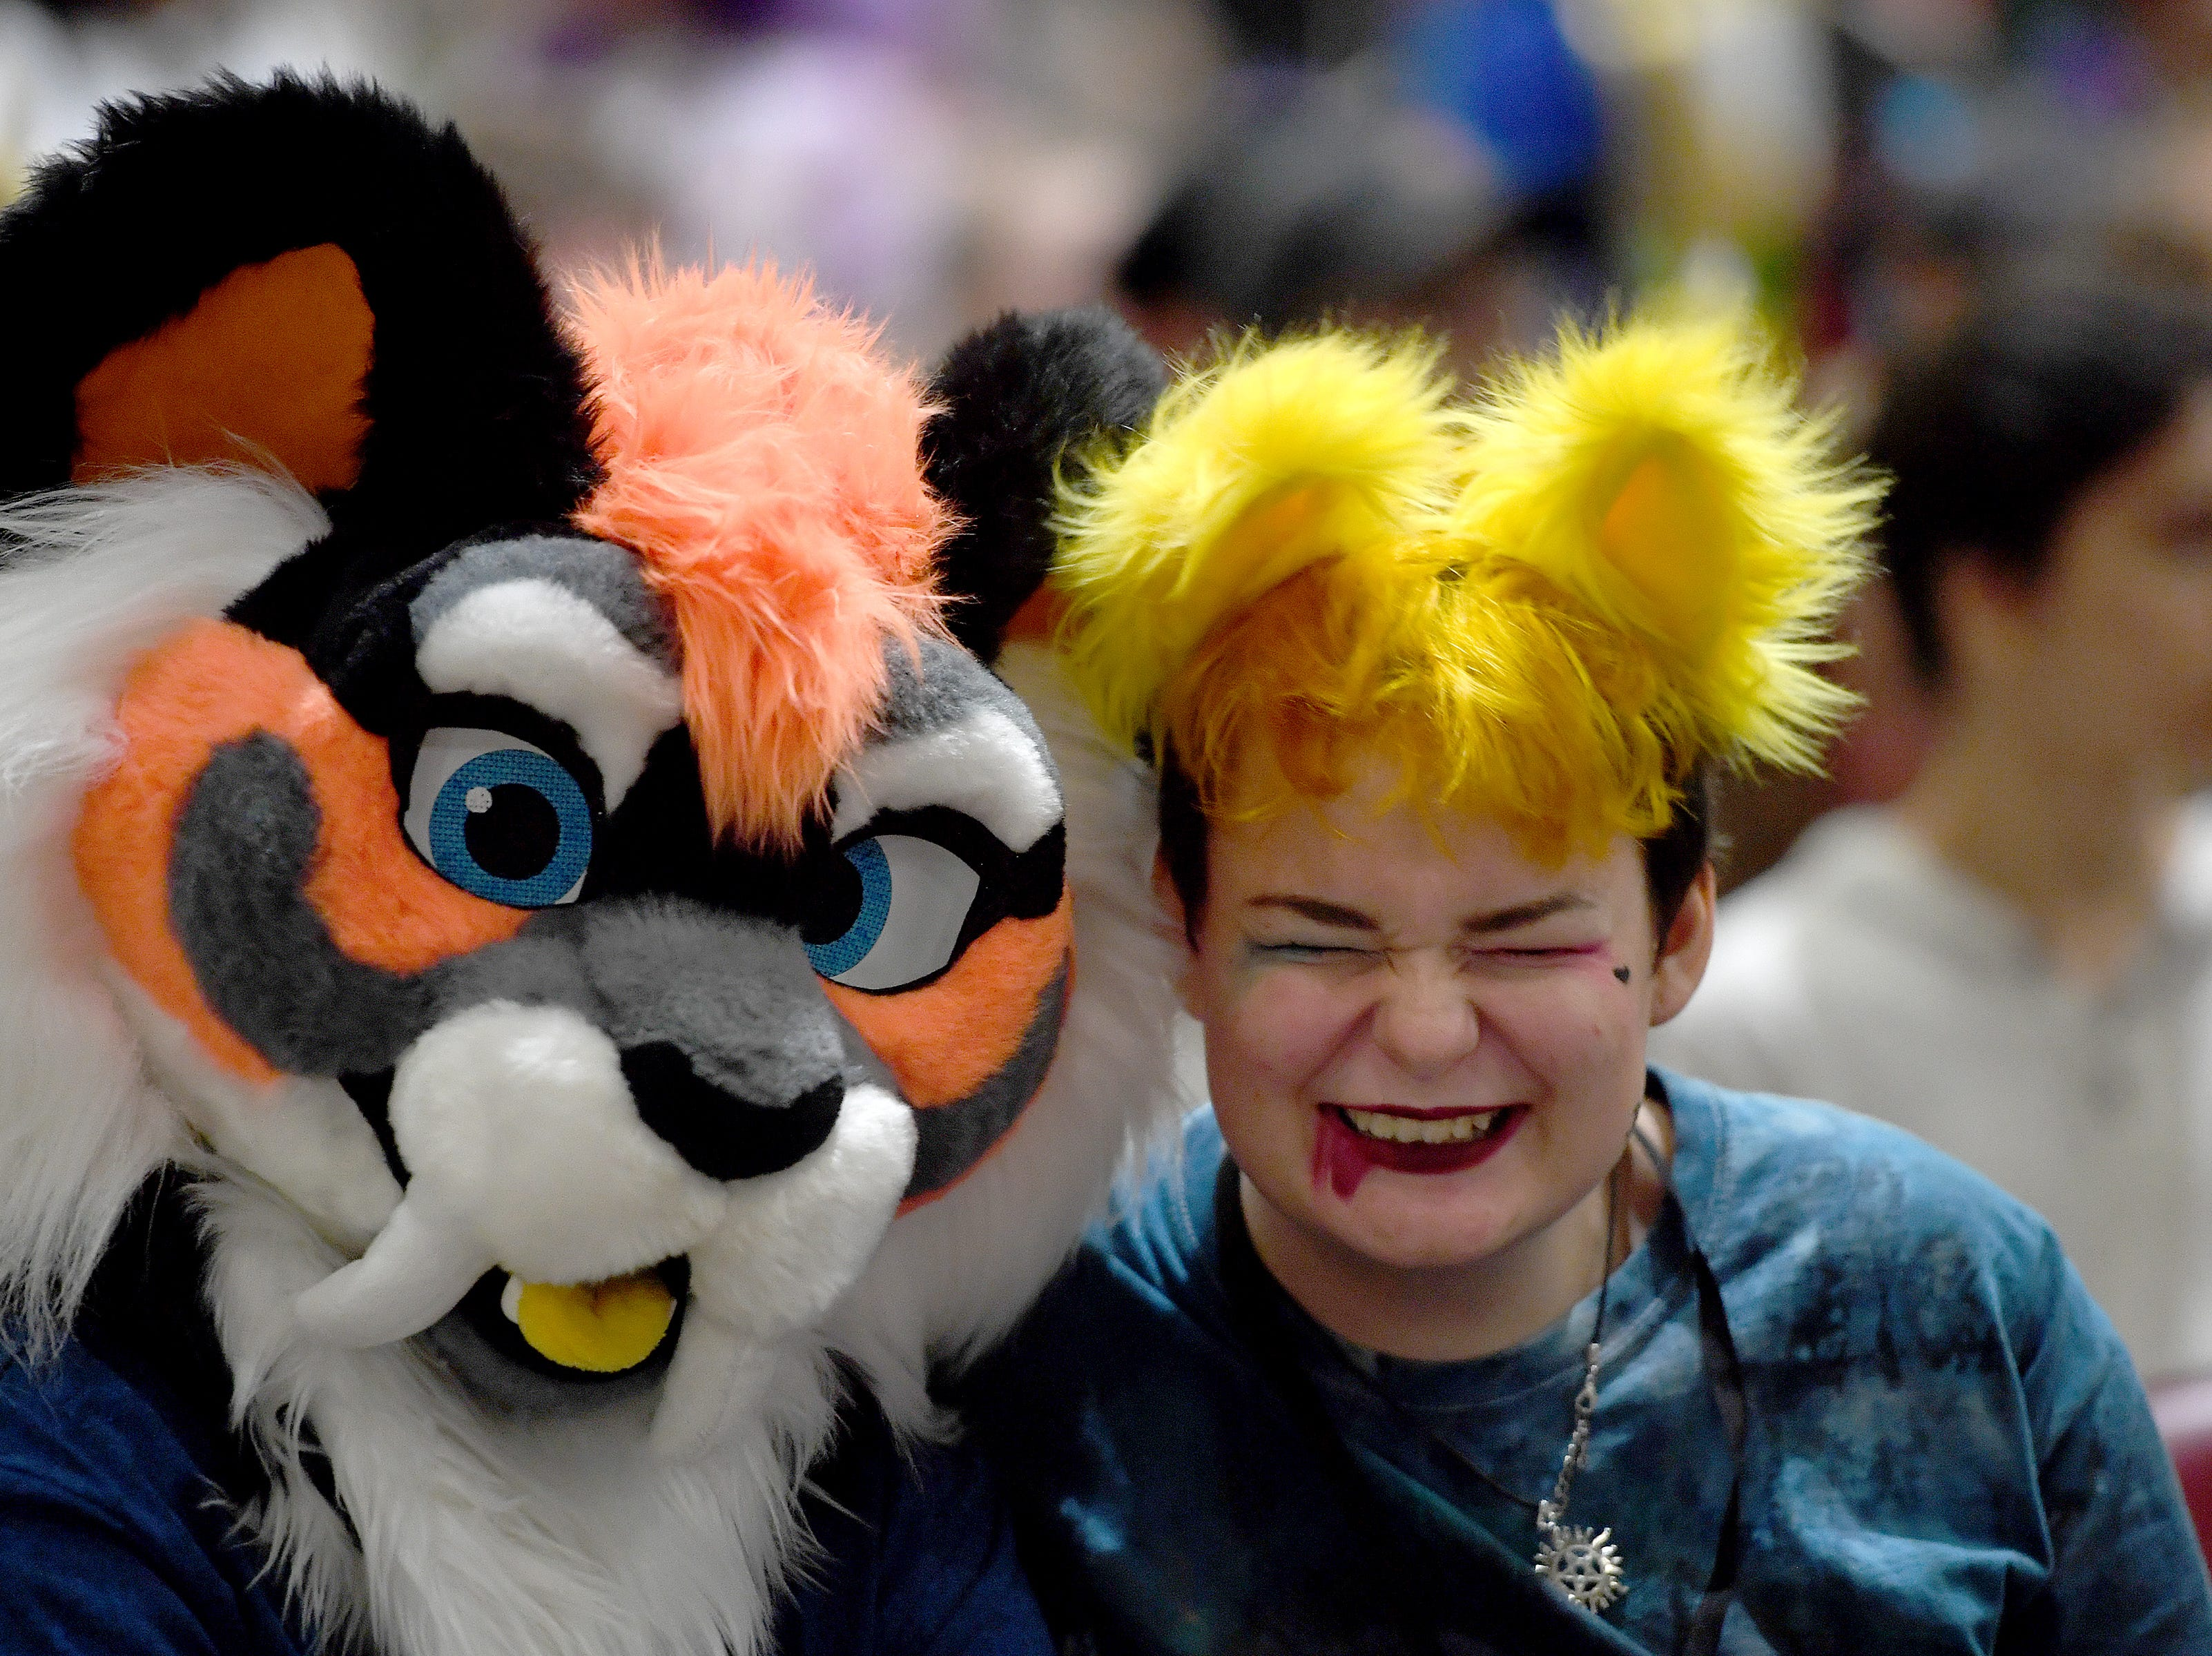 The Asheville Anime Regional Convention 2018 expanded into a two-day event with panels, workshops, vendors, contests and more at the U.S. Cellular Center starting on Saturday, July 28, 2018.